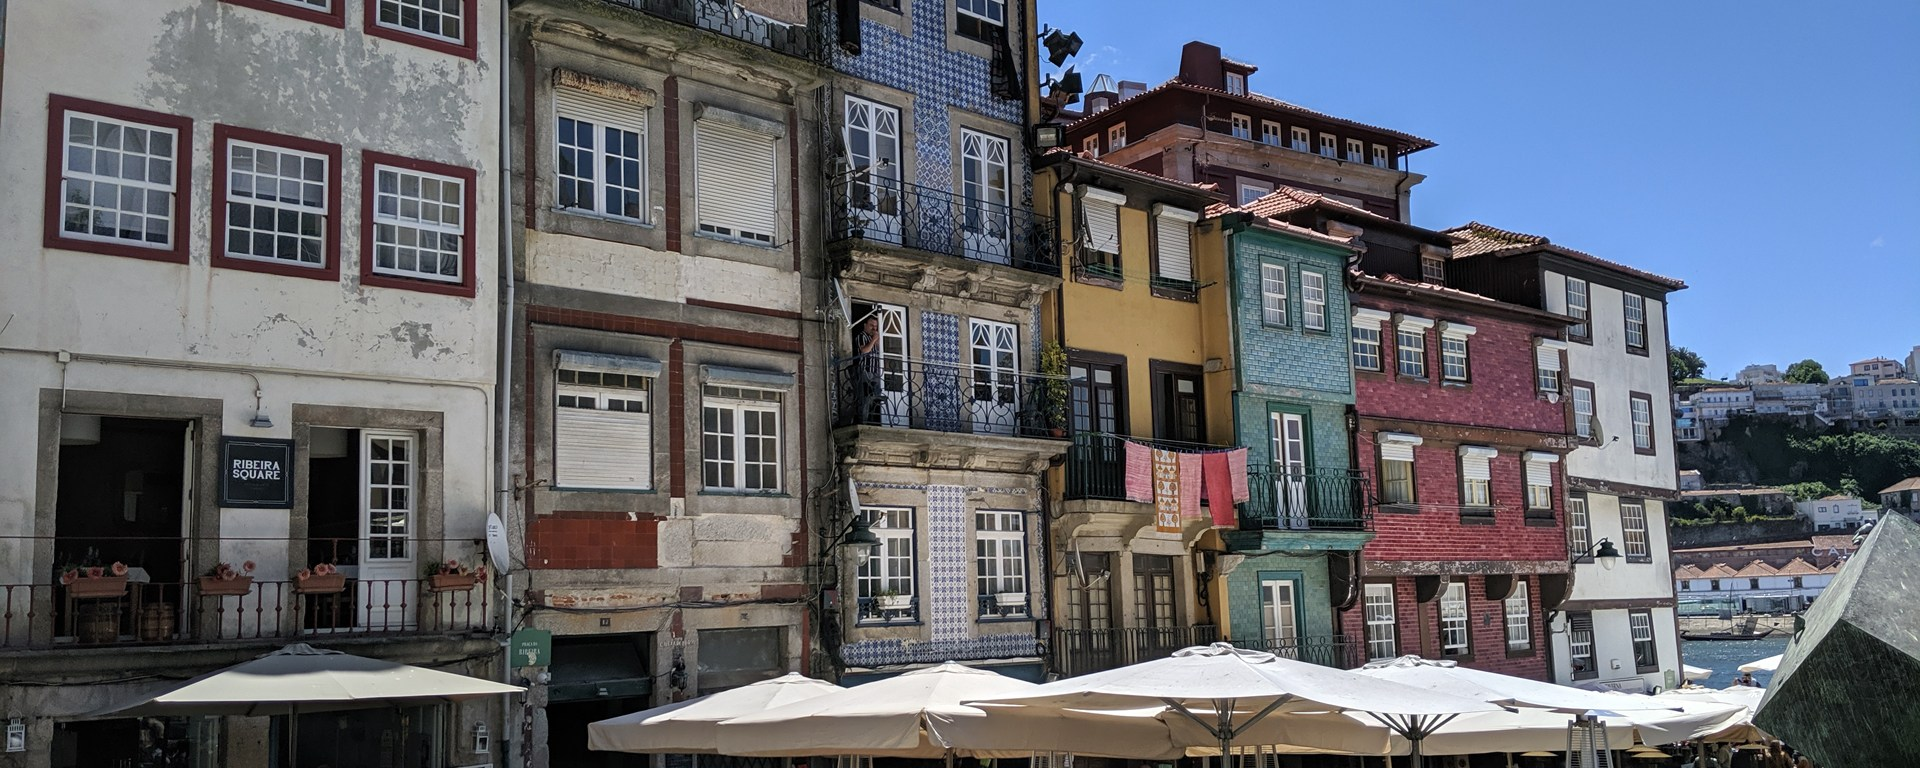 Porto_tunes&wings_techno_travel_IMG_20190518_134035